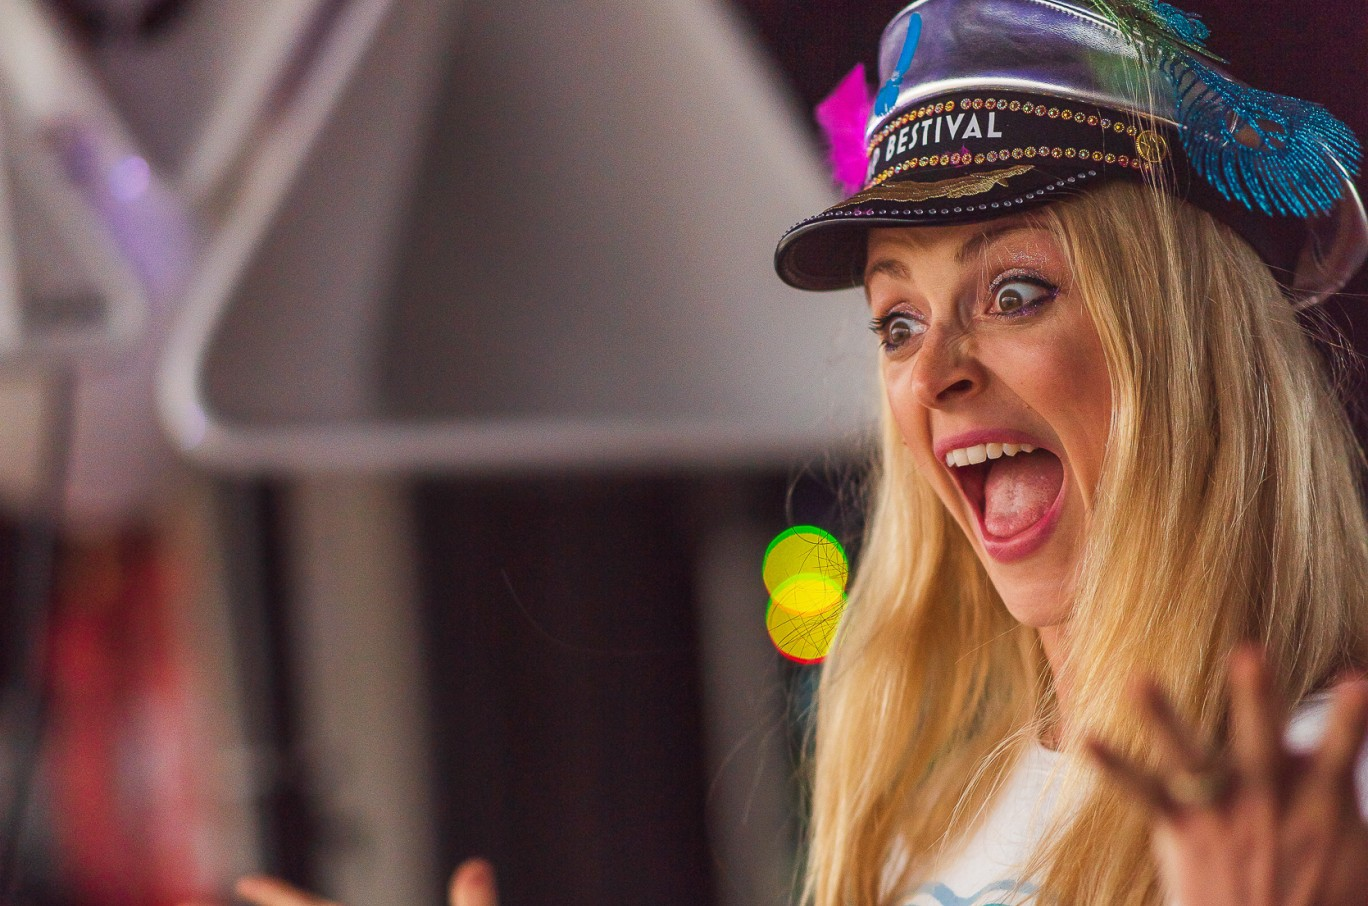 Day2_HMSBestival_FearneCotton_MM-6594.jpg